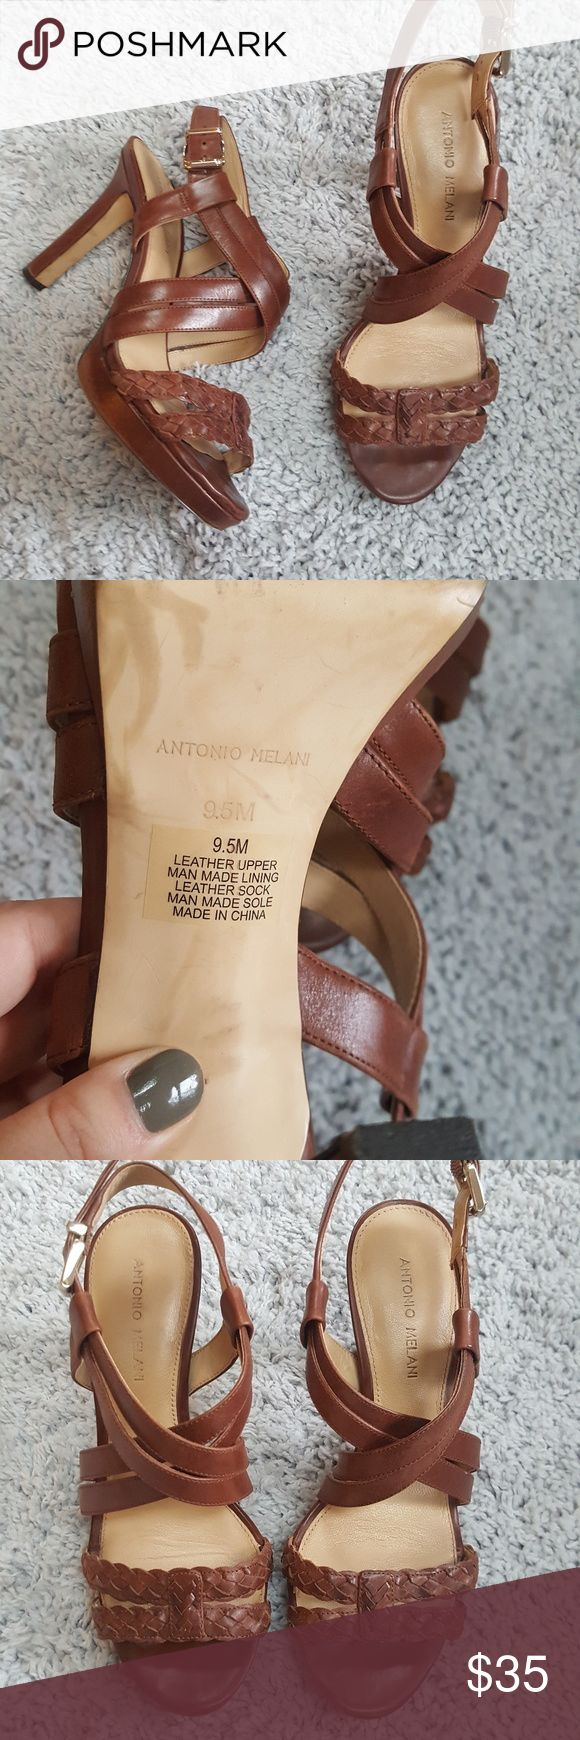 [Antonio Milani] Leather Strapy Heels Brown leather strapy heels in good used condition. There is some wear shown in back of heels, shown in pics. Surprisingly super comfy for heel height!   Open to offers! Bundle and save  20%! ANTONIO MELANI Shoes Heels